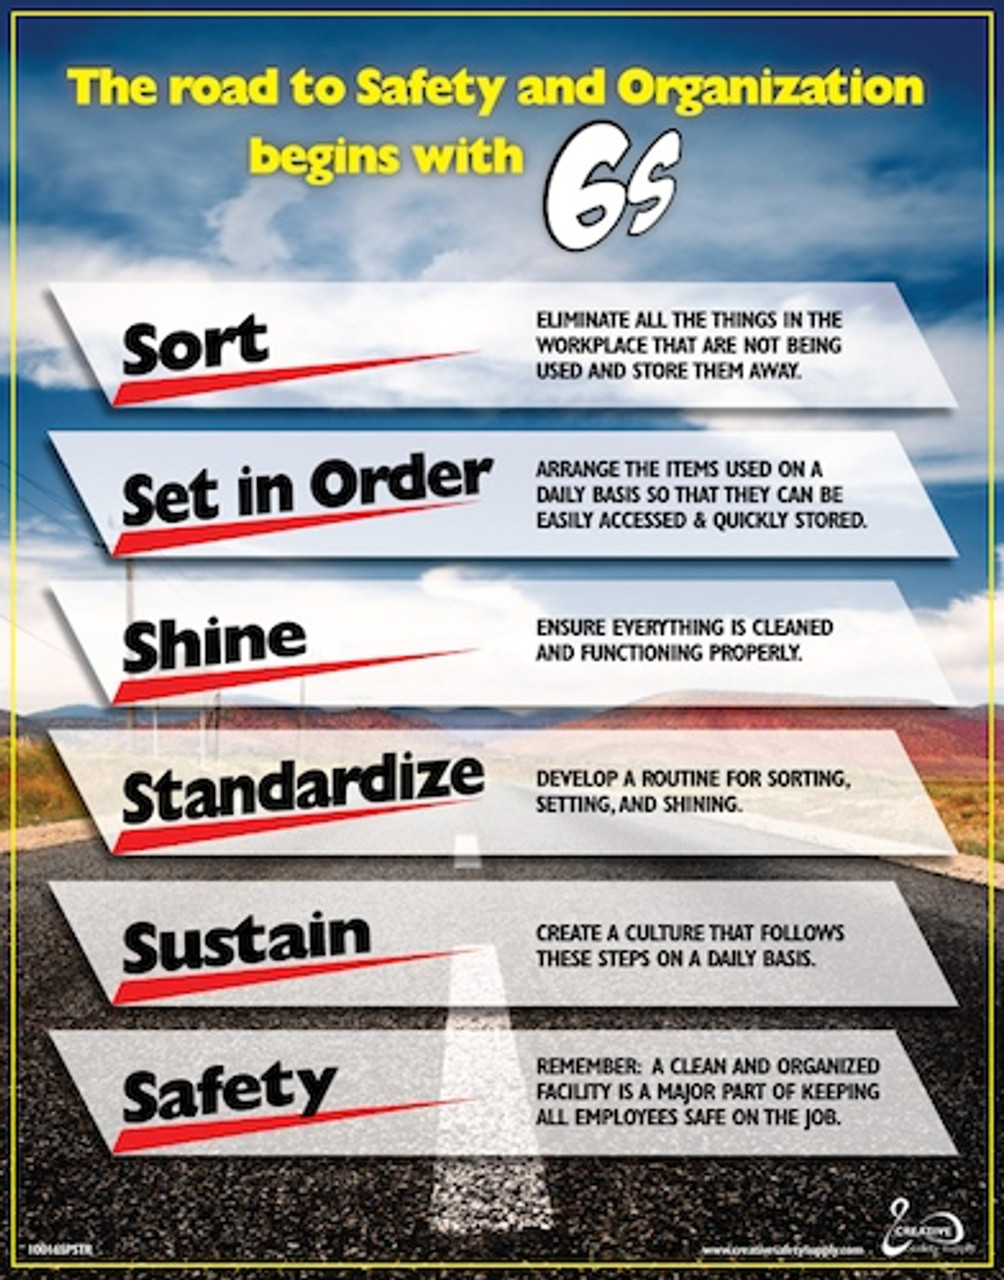 photo regarding Free Printable Safety Posters referred to as Highway toward Protection/6S Poster